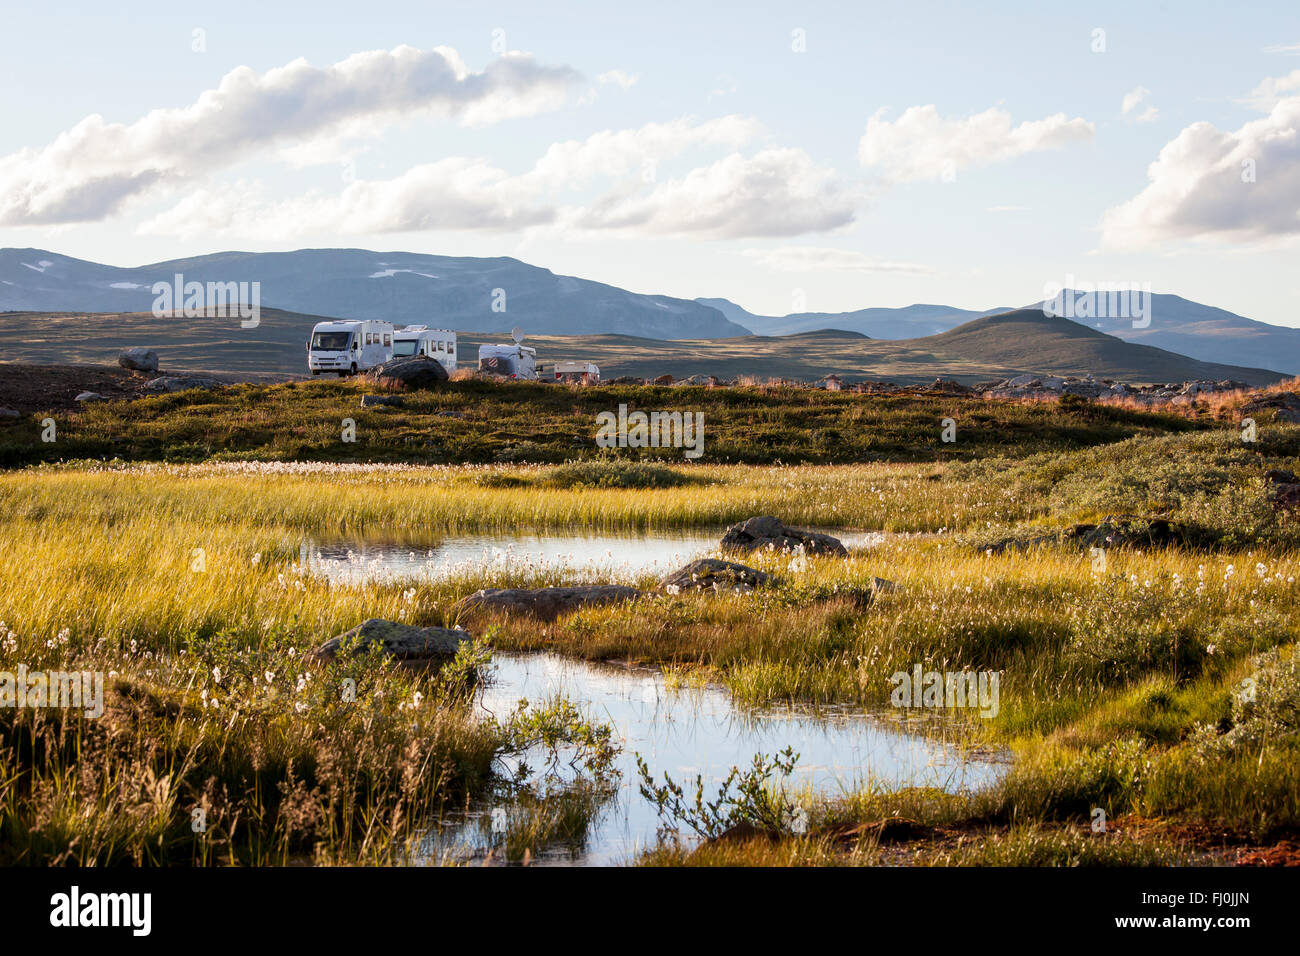 Picture of motor homes parked in the wilderness of Swedish Lapland. - Stock Image